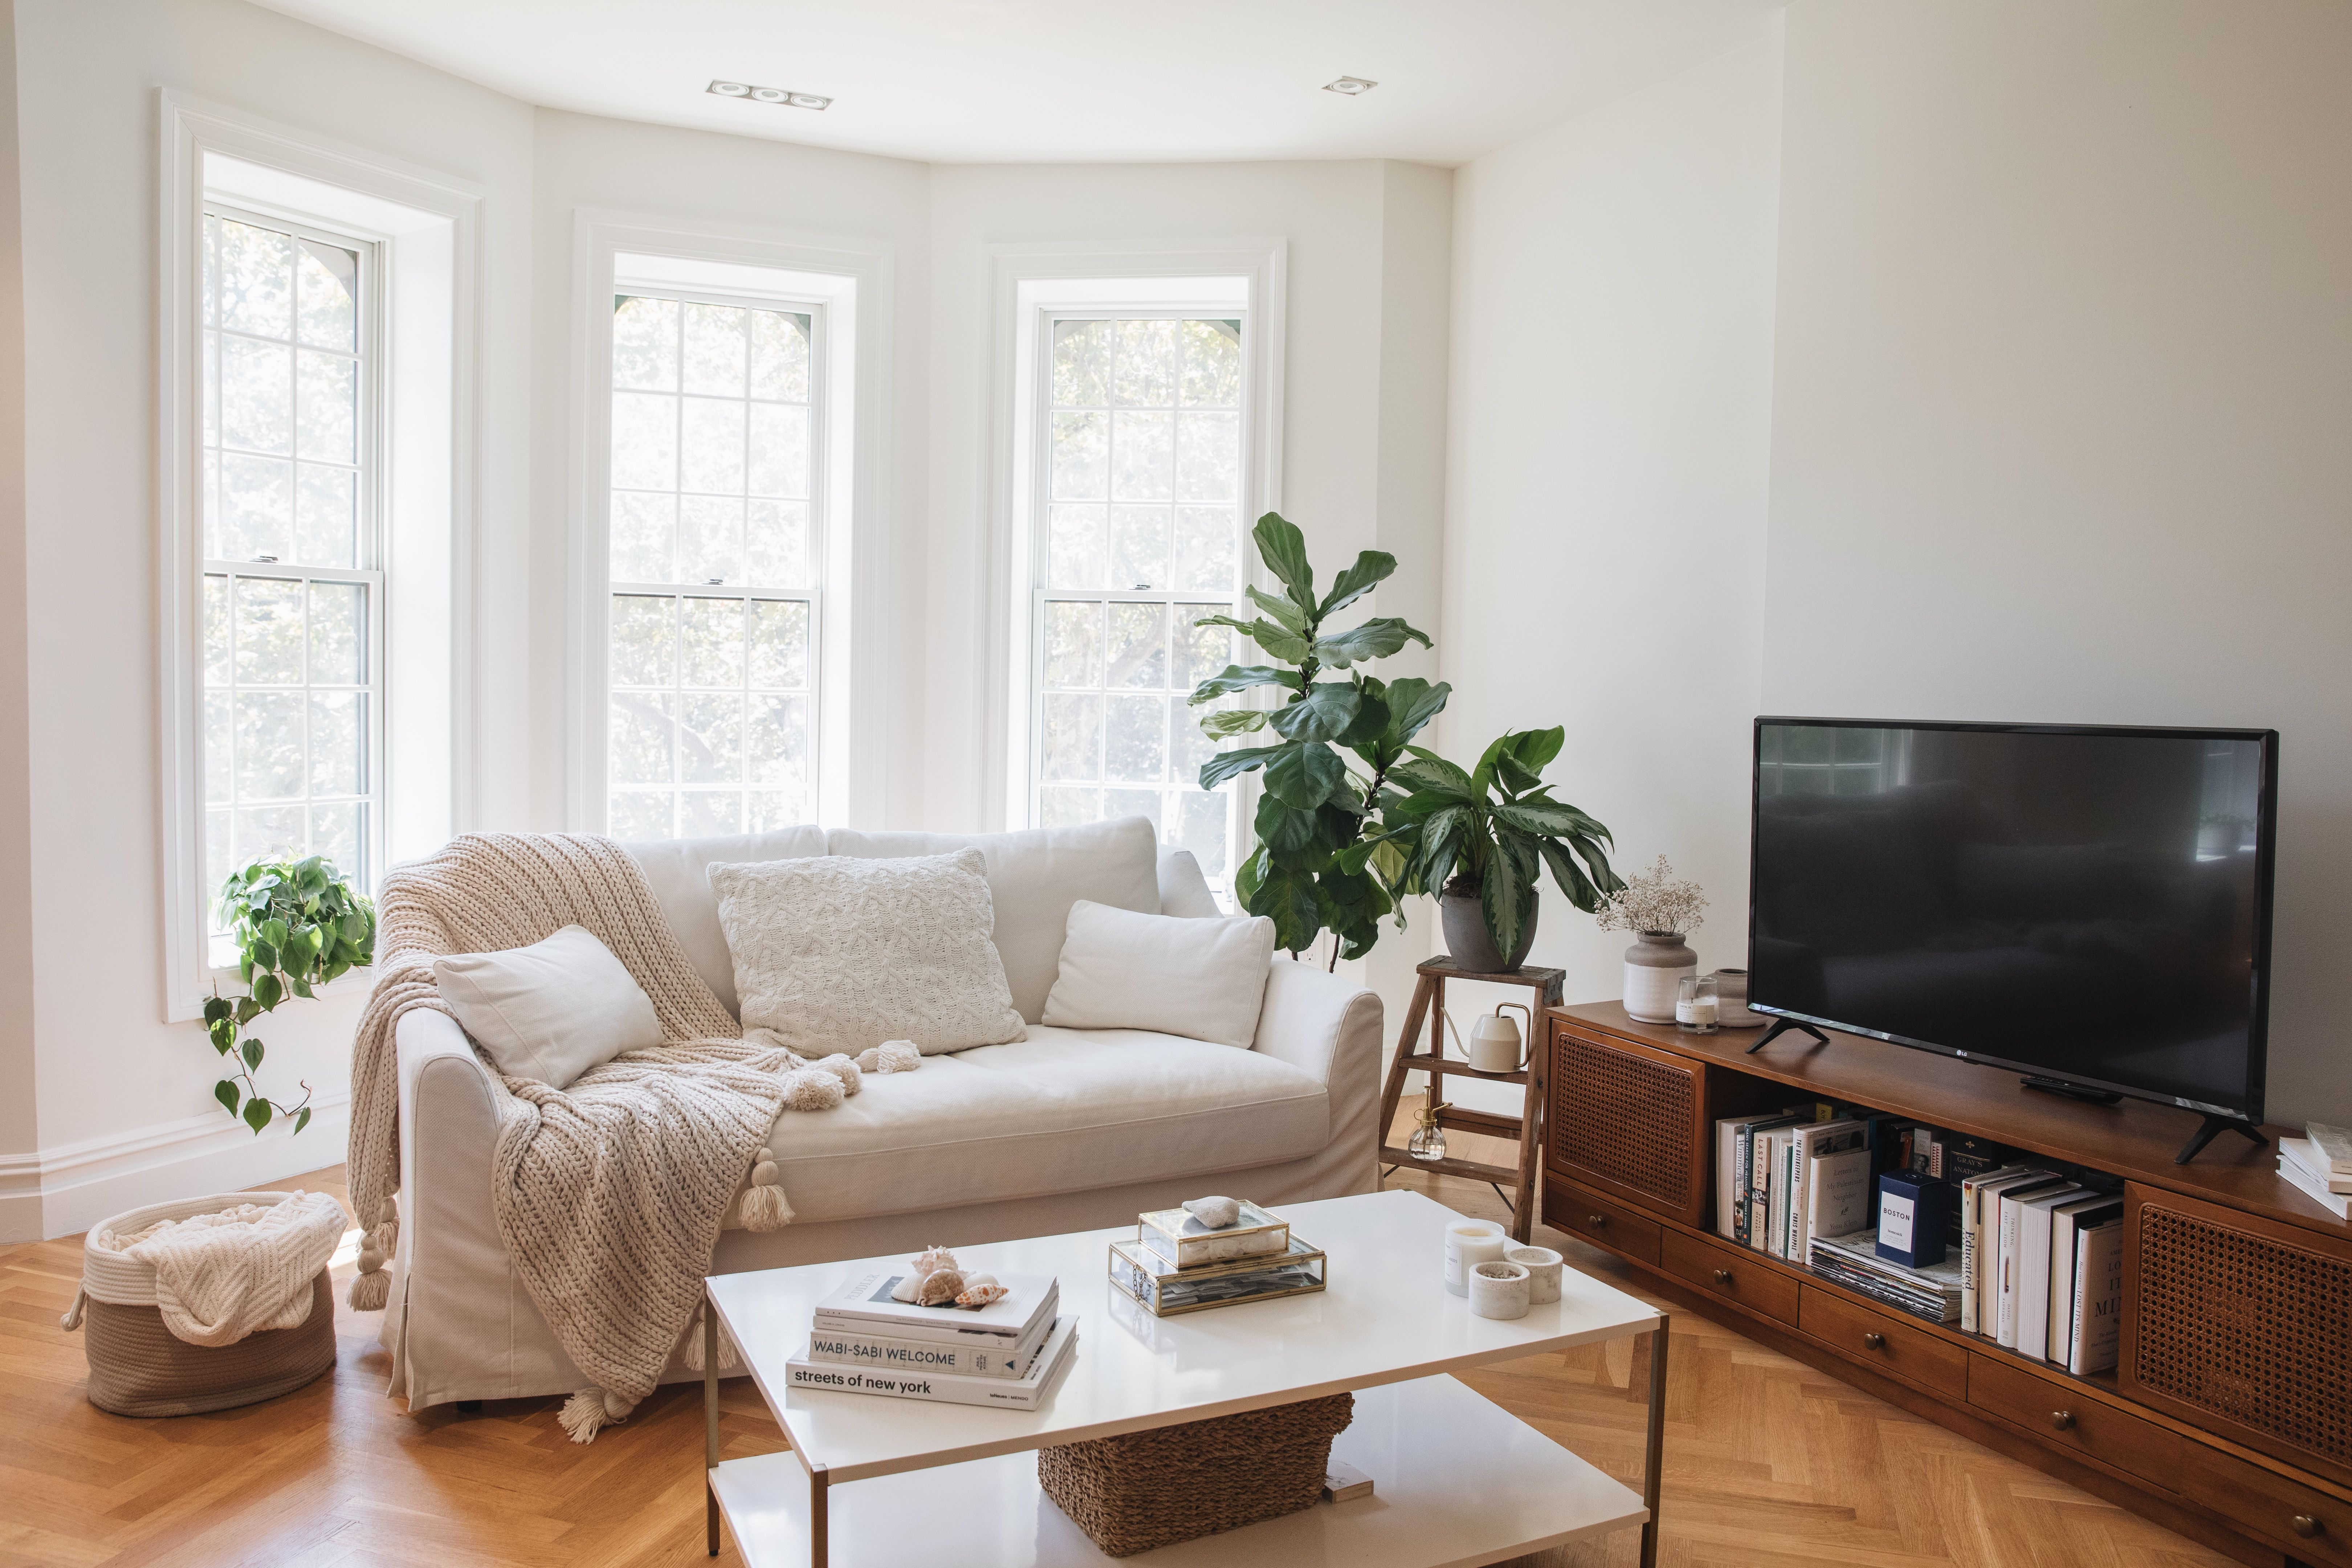 9 Simple Decorating Rules for Arranging Furniture